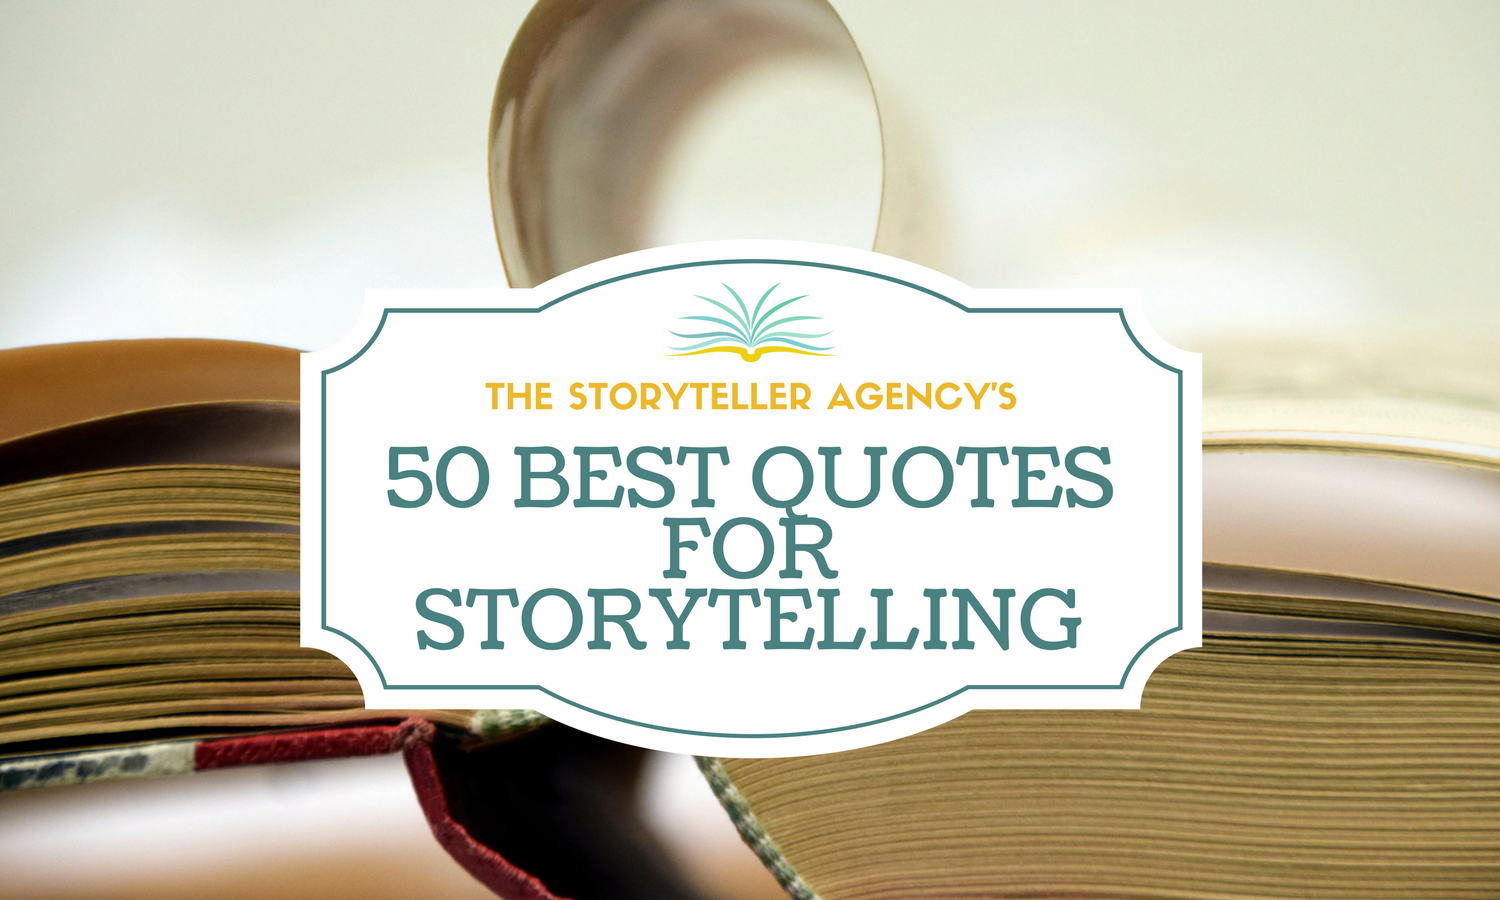 Storytelling Quotes 50 Best Quotes For Storytelling  The Storyteller Agency